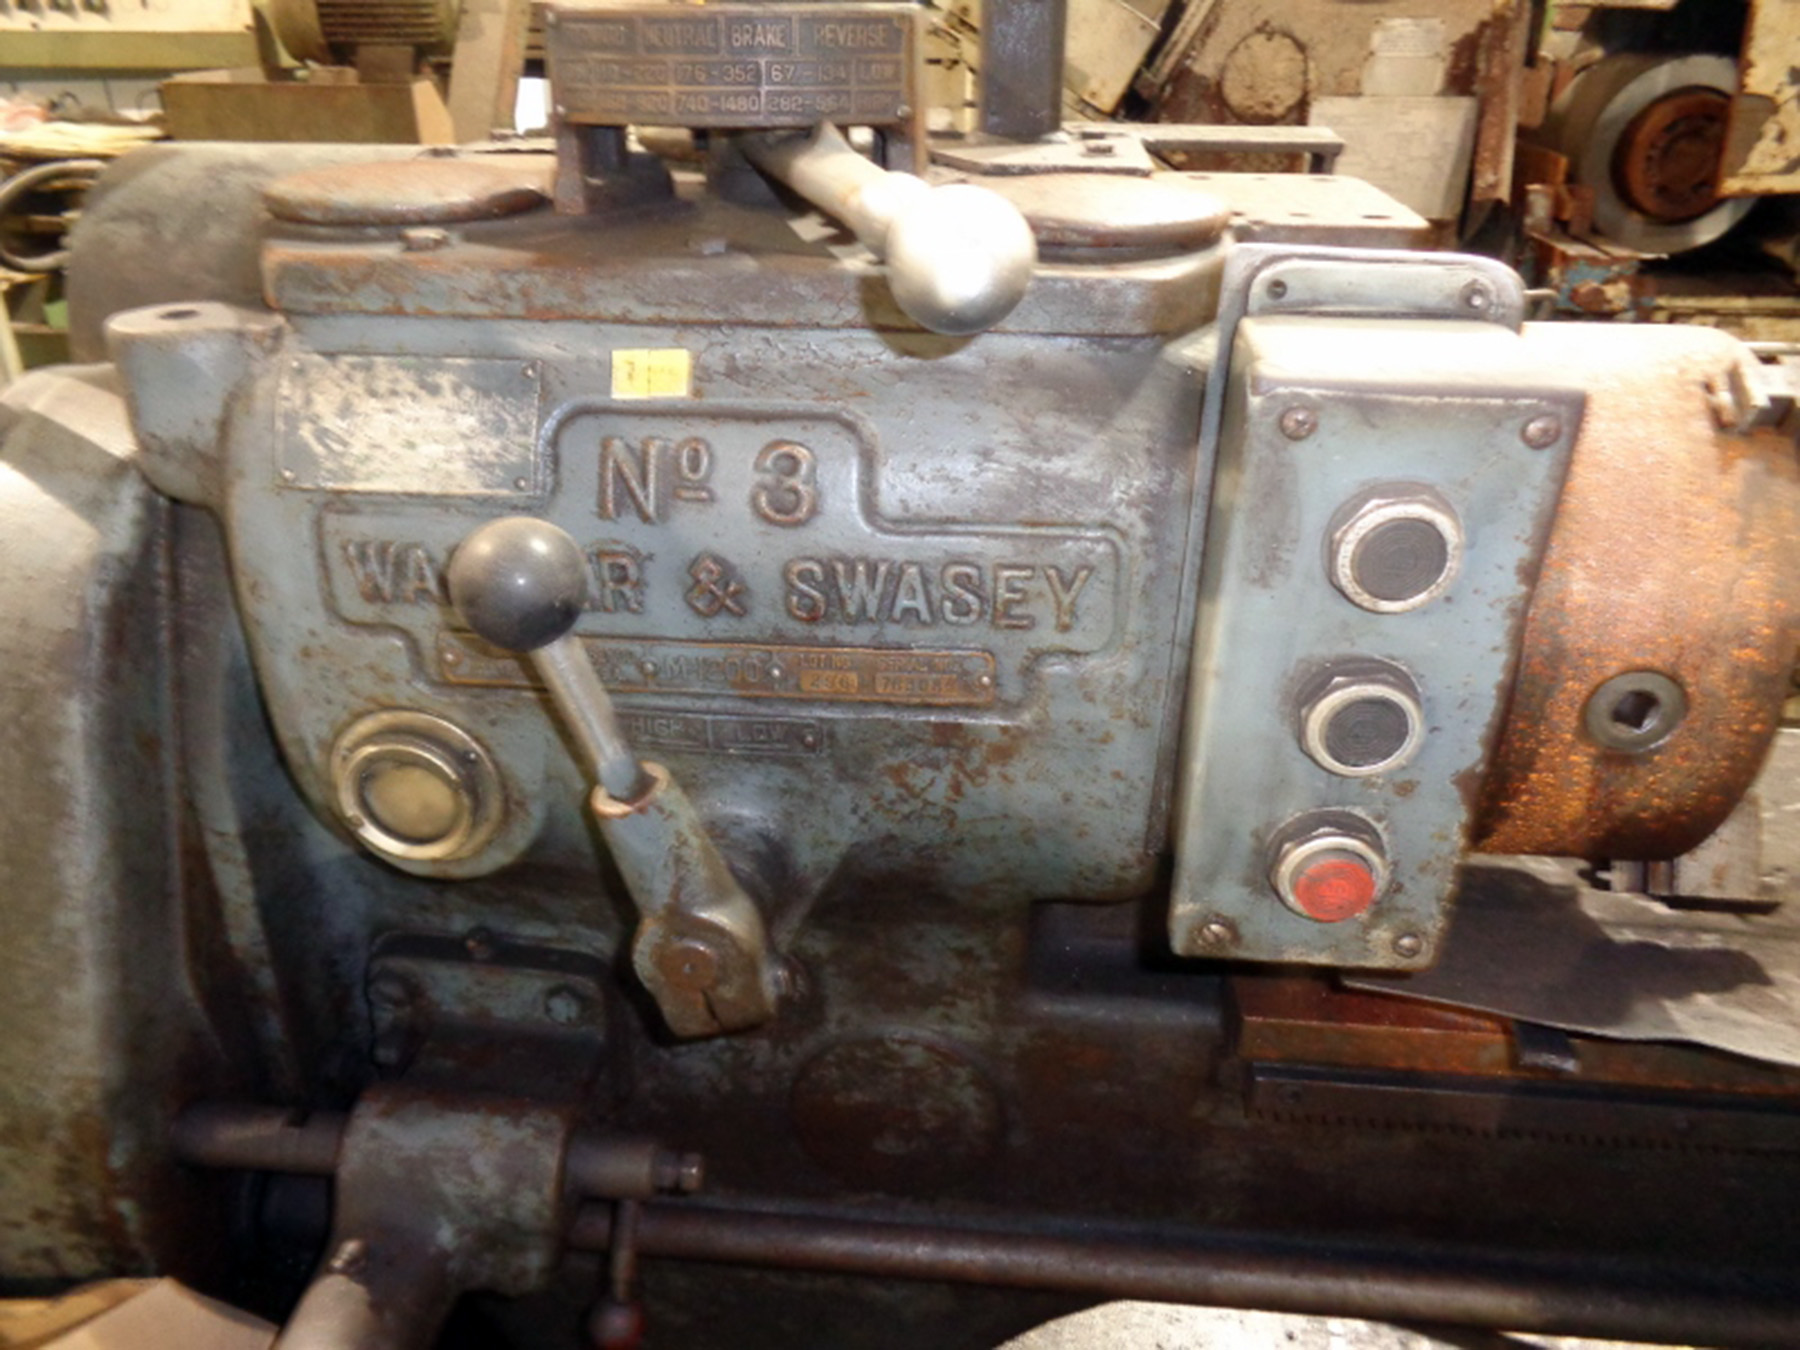 USED, WARNER & SWASEY NO. 3 TURRET LATHE